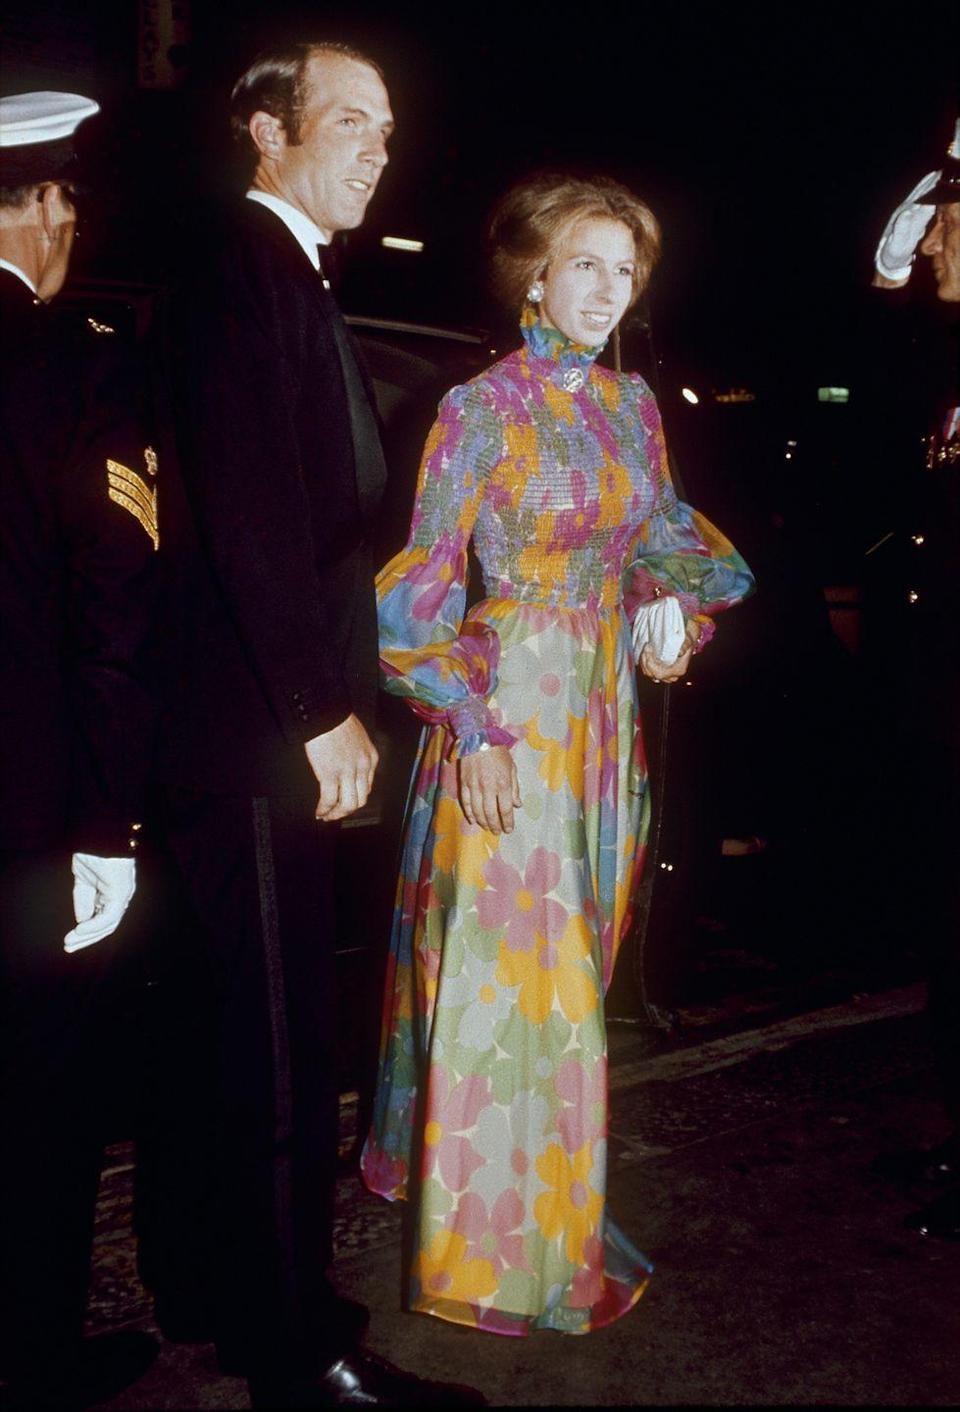 <p>Princess Anne wore a floral printed gown with a sleek updo to a film premiere in London with her husband, Mark Phillips.</p>